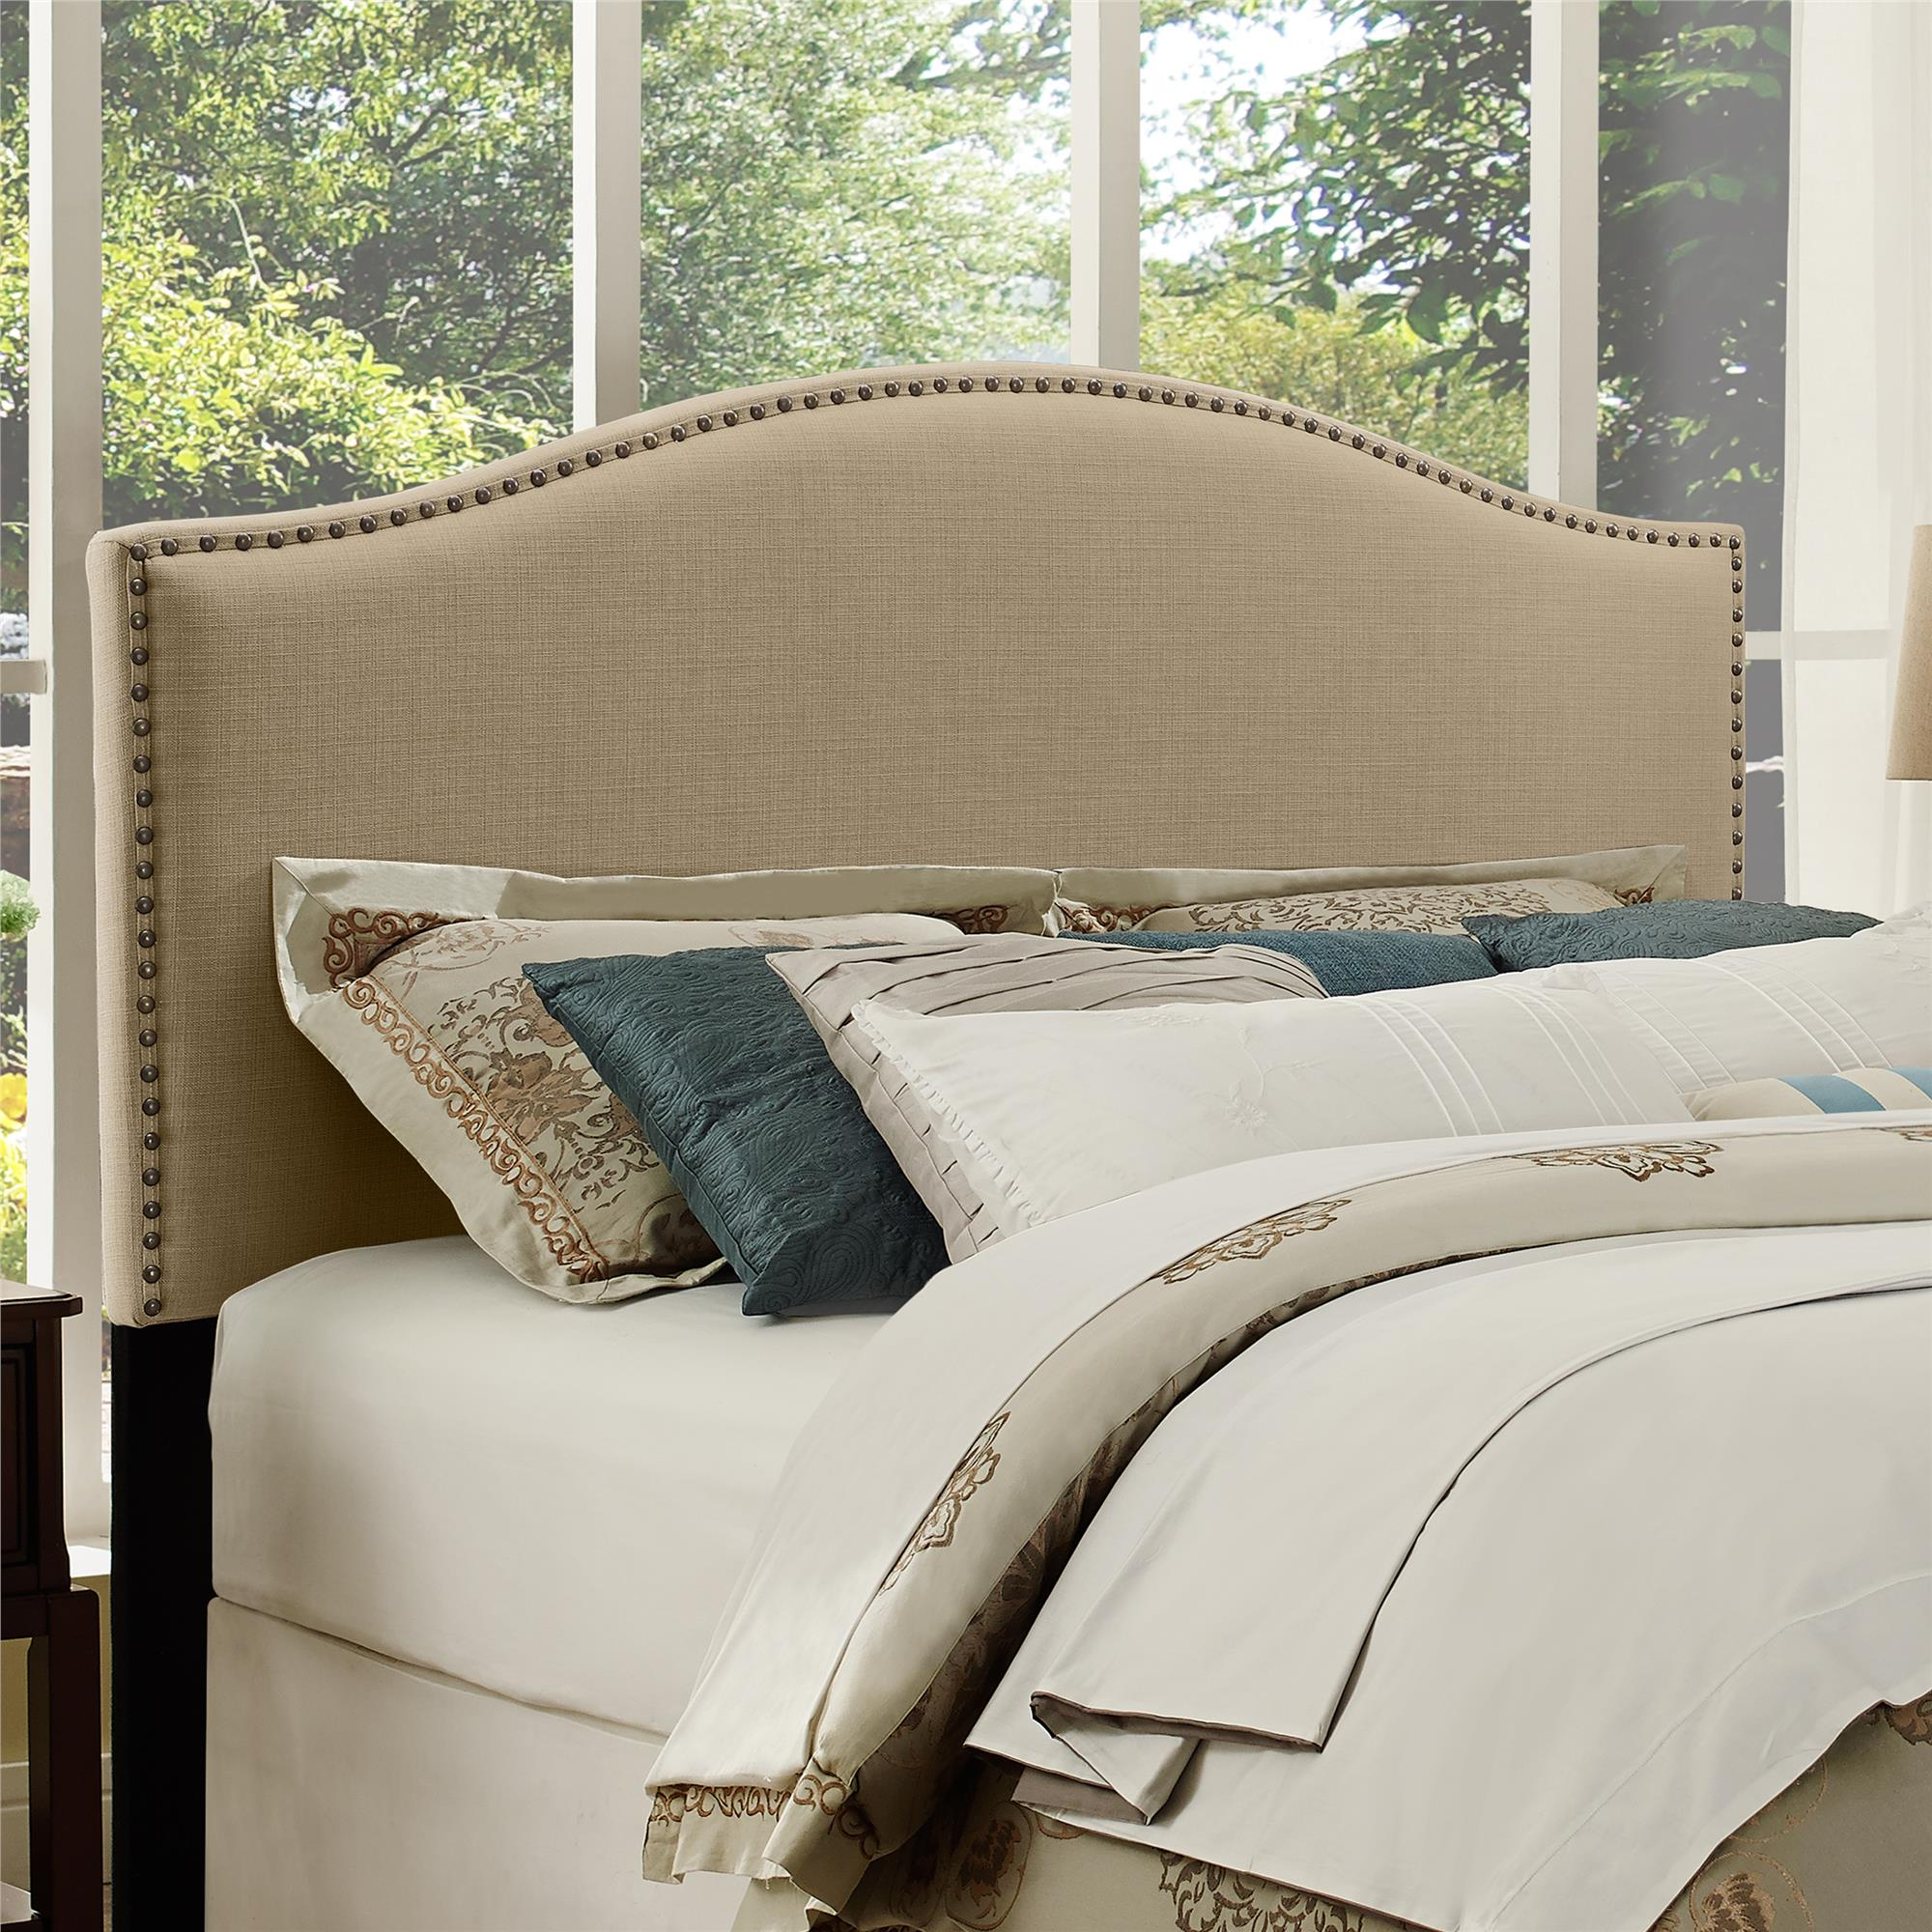 net from fabulous with tufted luxurious king headboard and nightstand bedroomi ideas touch cushions leather fabric